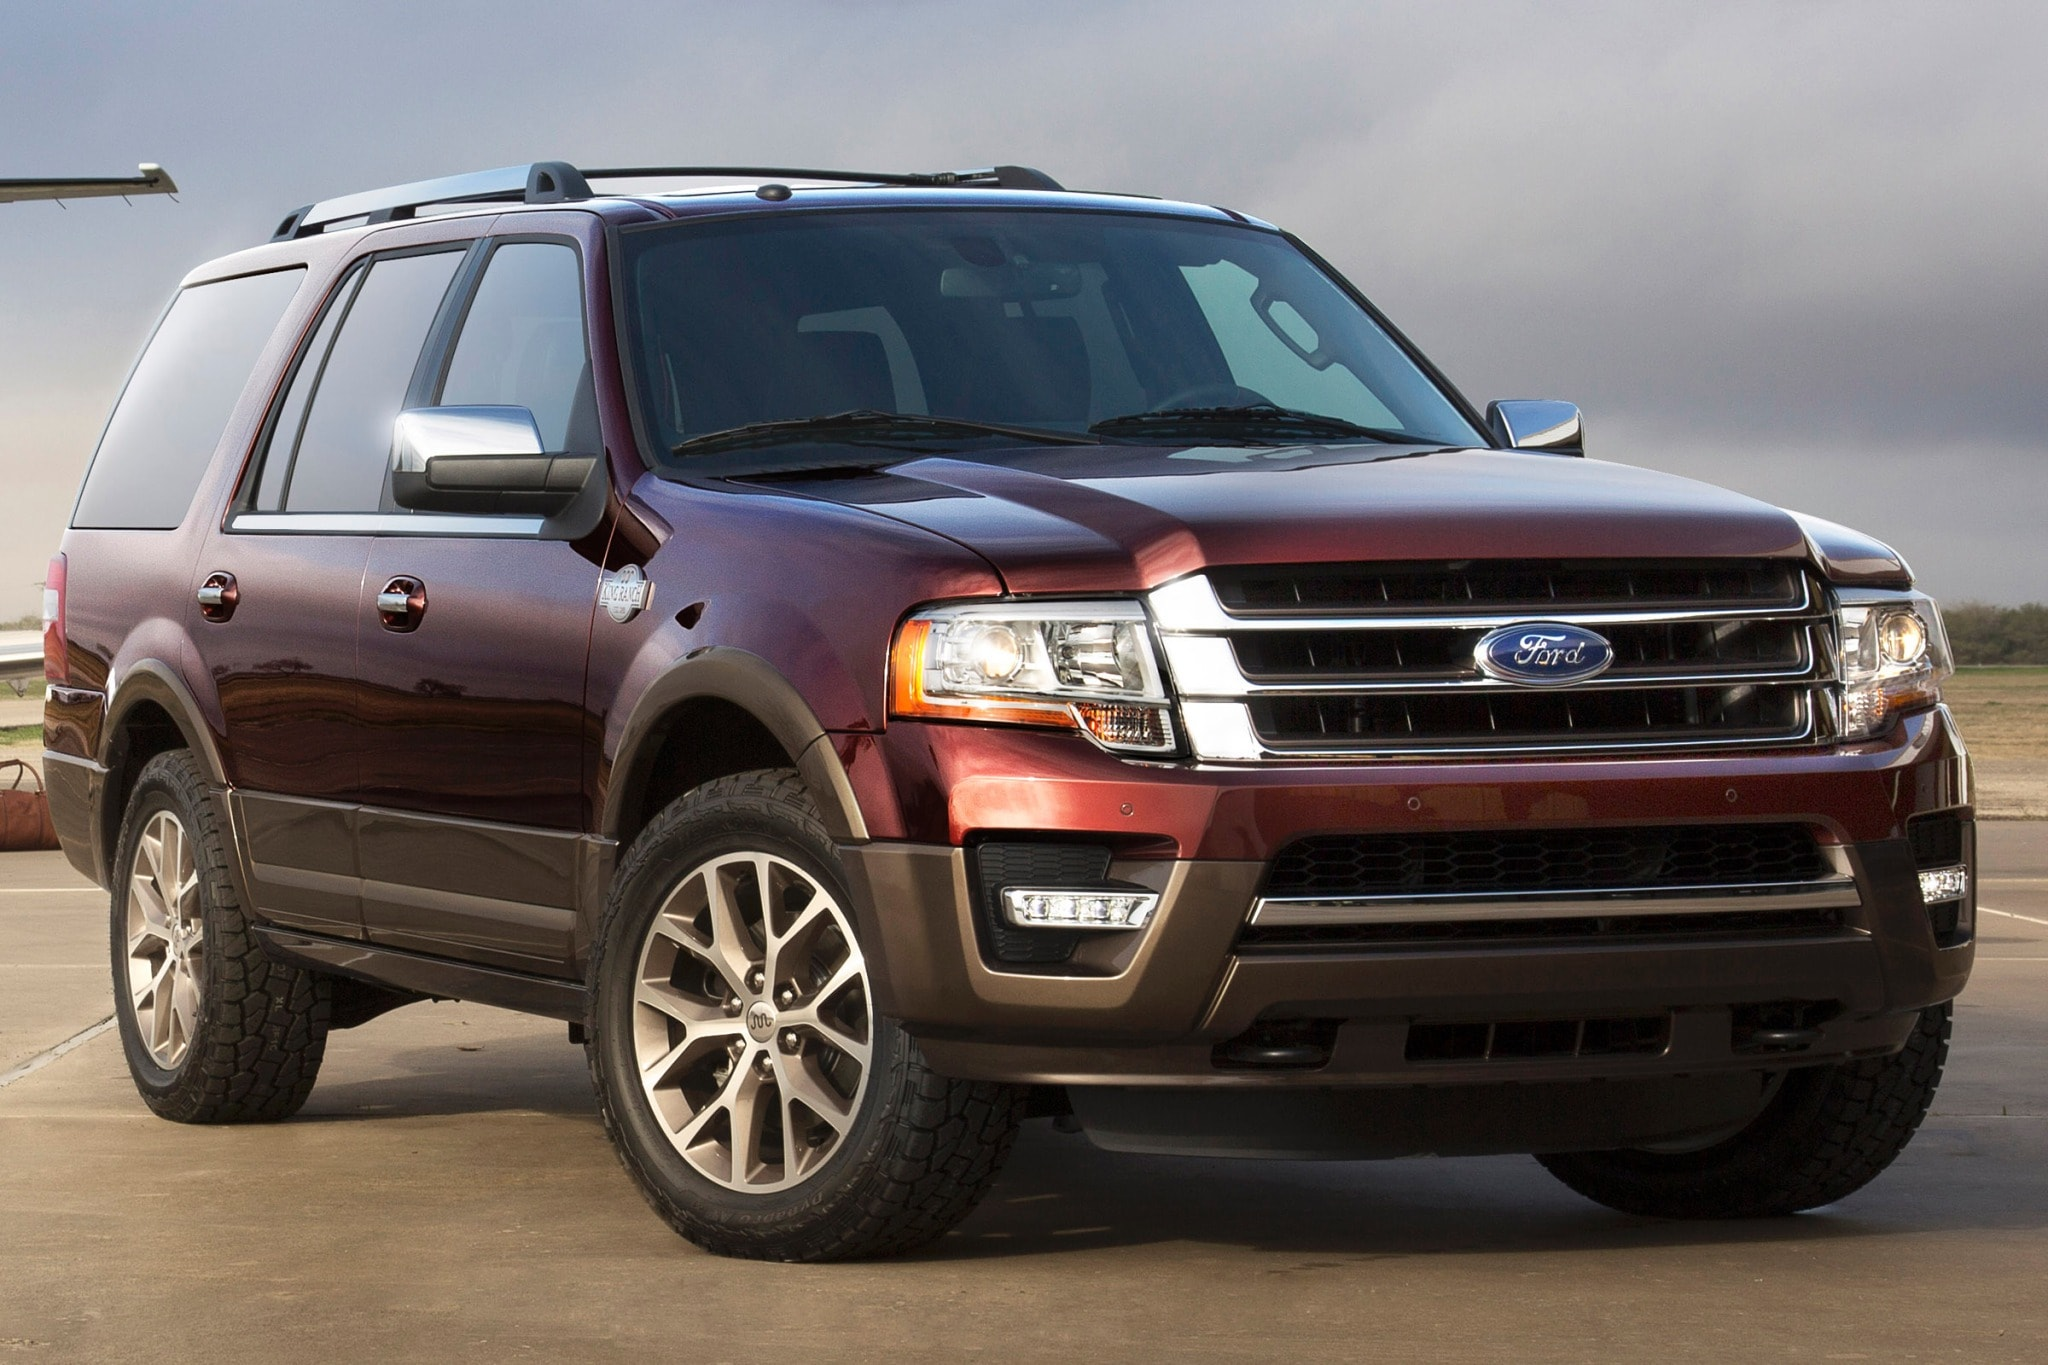 which suvs have captains chairs steel chair frame design 2015 3rd row suv with captain autos post